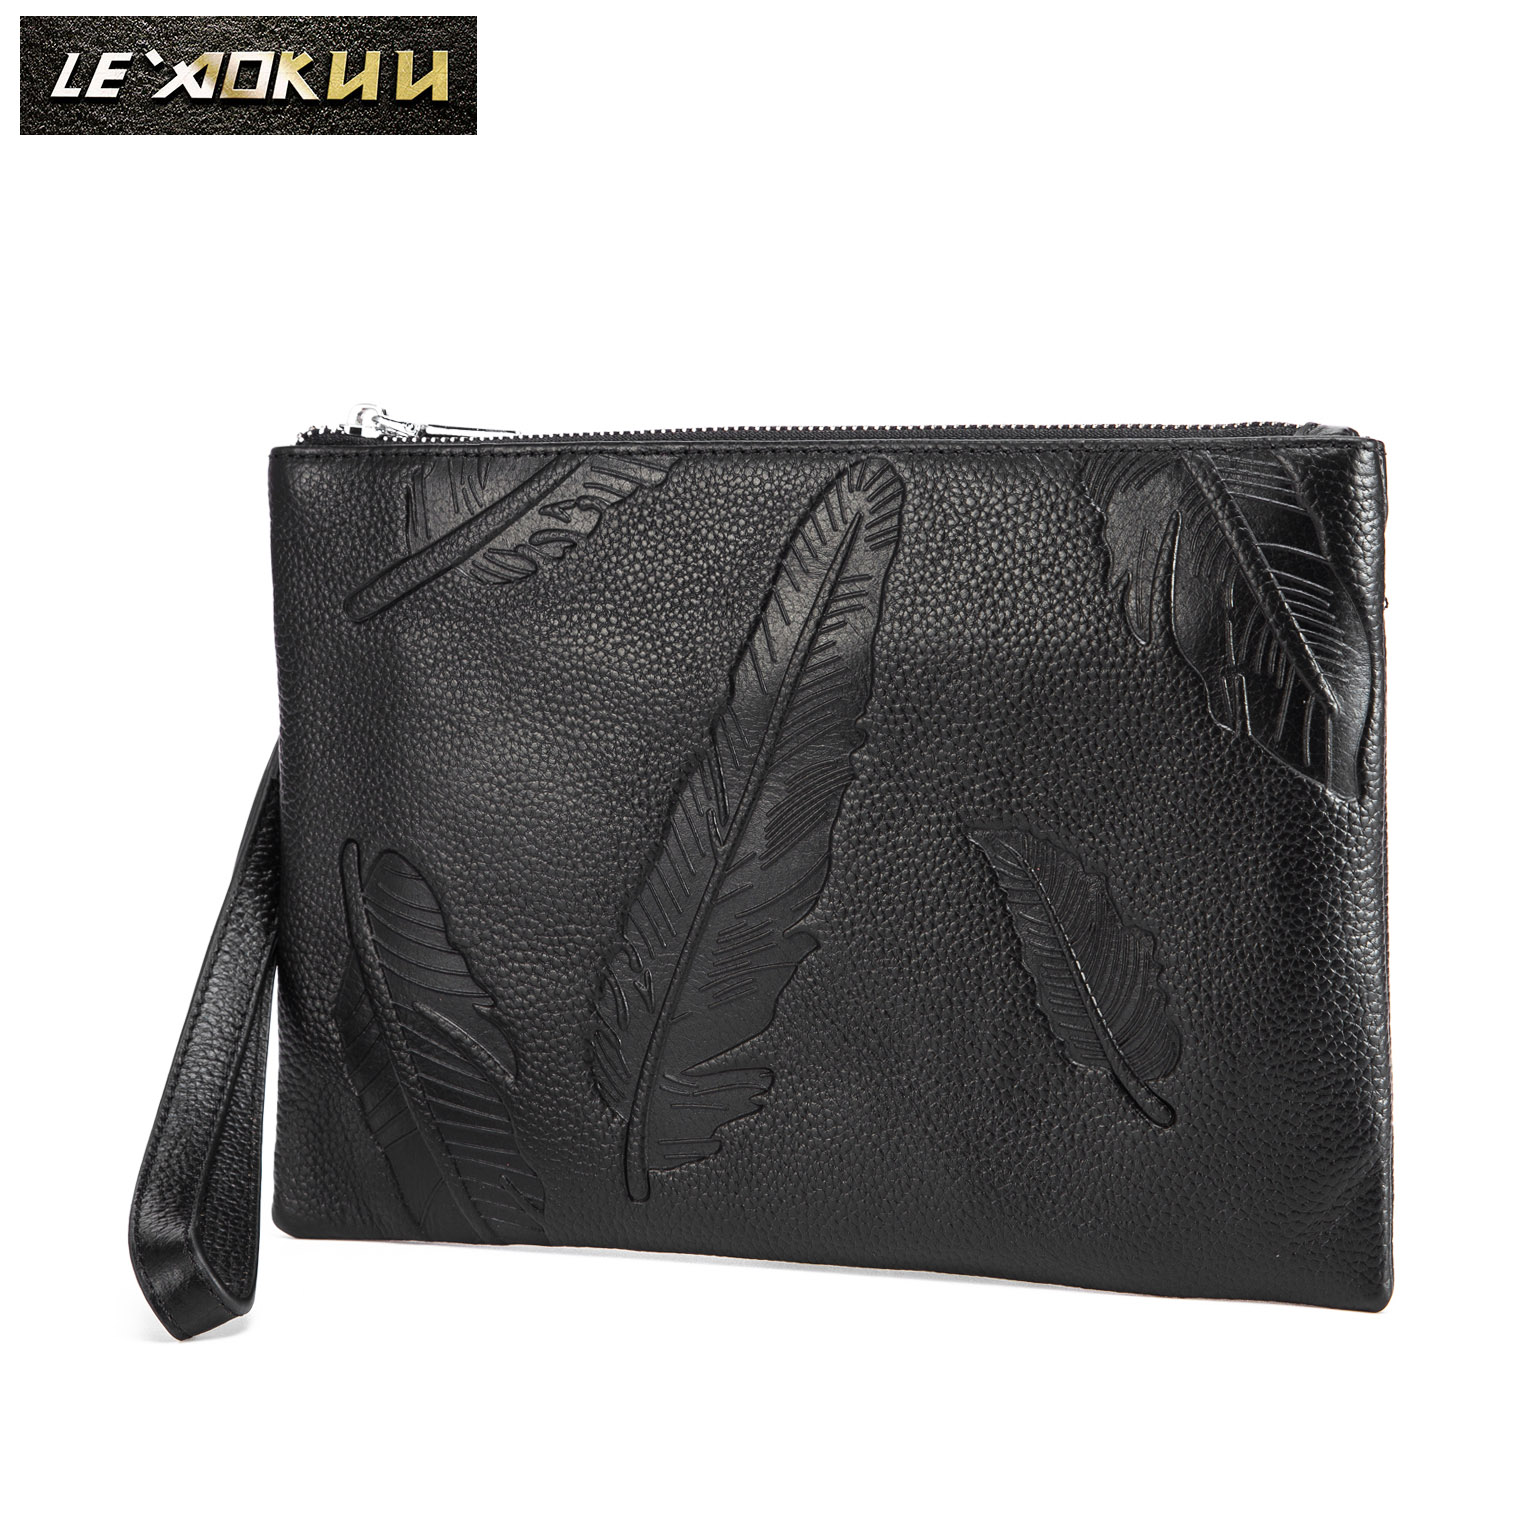 "Original leather Men Brand Fashion Slim Under Arm Clutch Bag Handbag Designer Chain Organizer Purse 10"" Tablet Case 6683(China)"